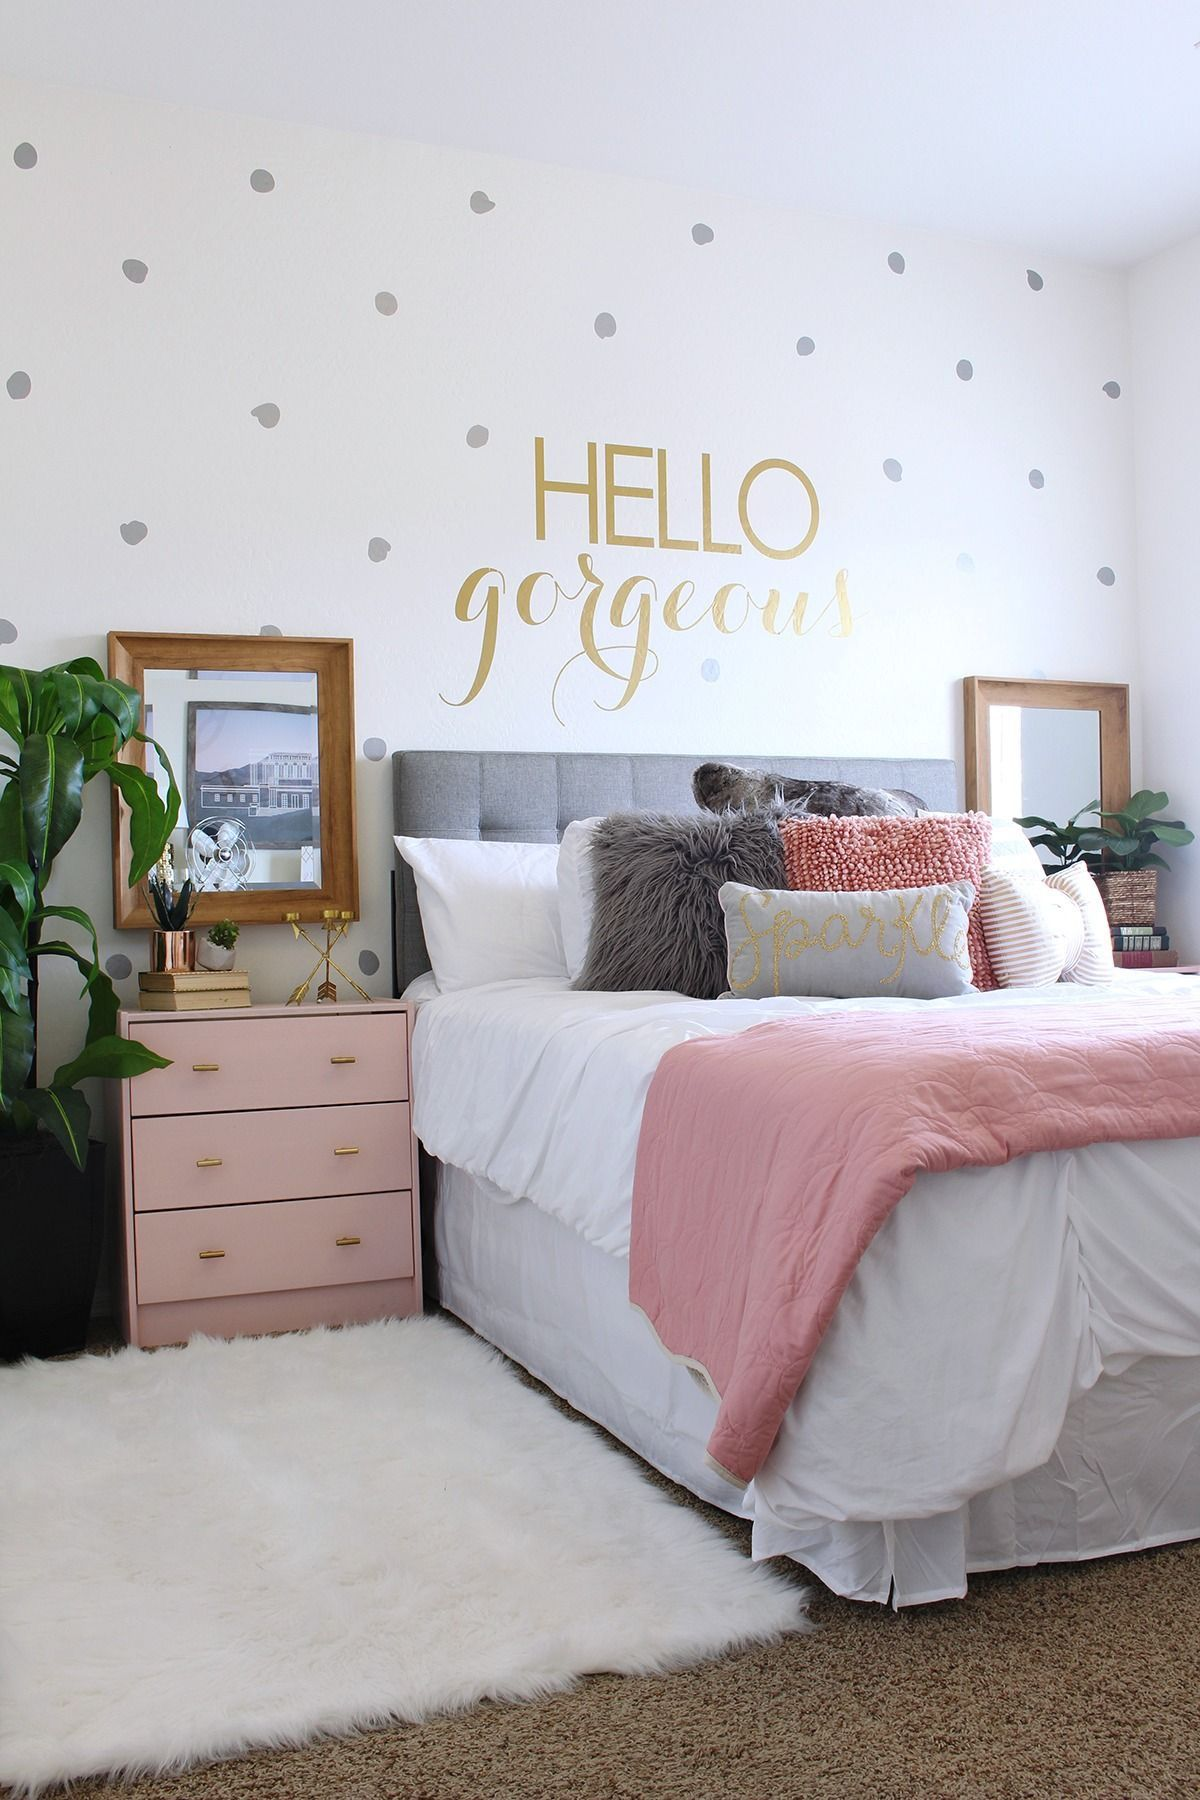 Pin de jennavieve Harvey en Room Ideas | Pinterest | Dormitorio ...